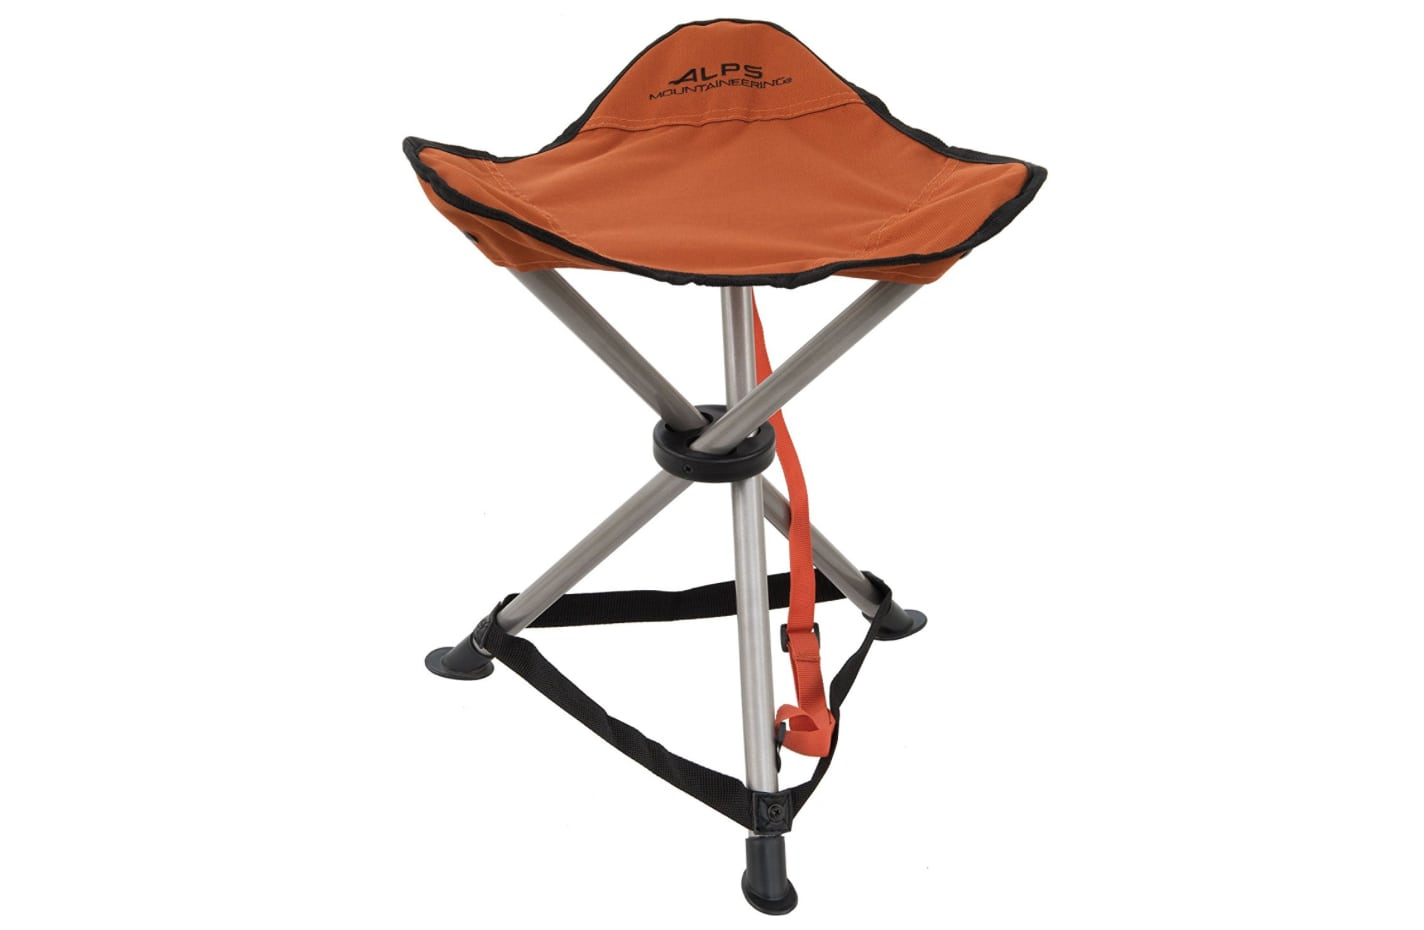 Enjoyable Top 5 Best Tripod Stools For Hunting Camping Fishing Ocoug Best Dining Table And Chair Ideas Images Ocougorg